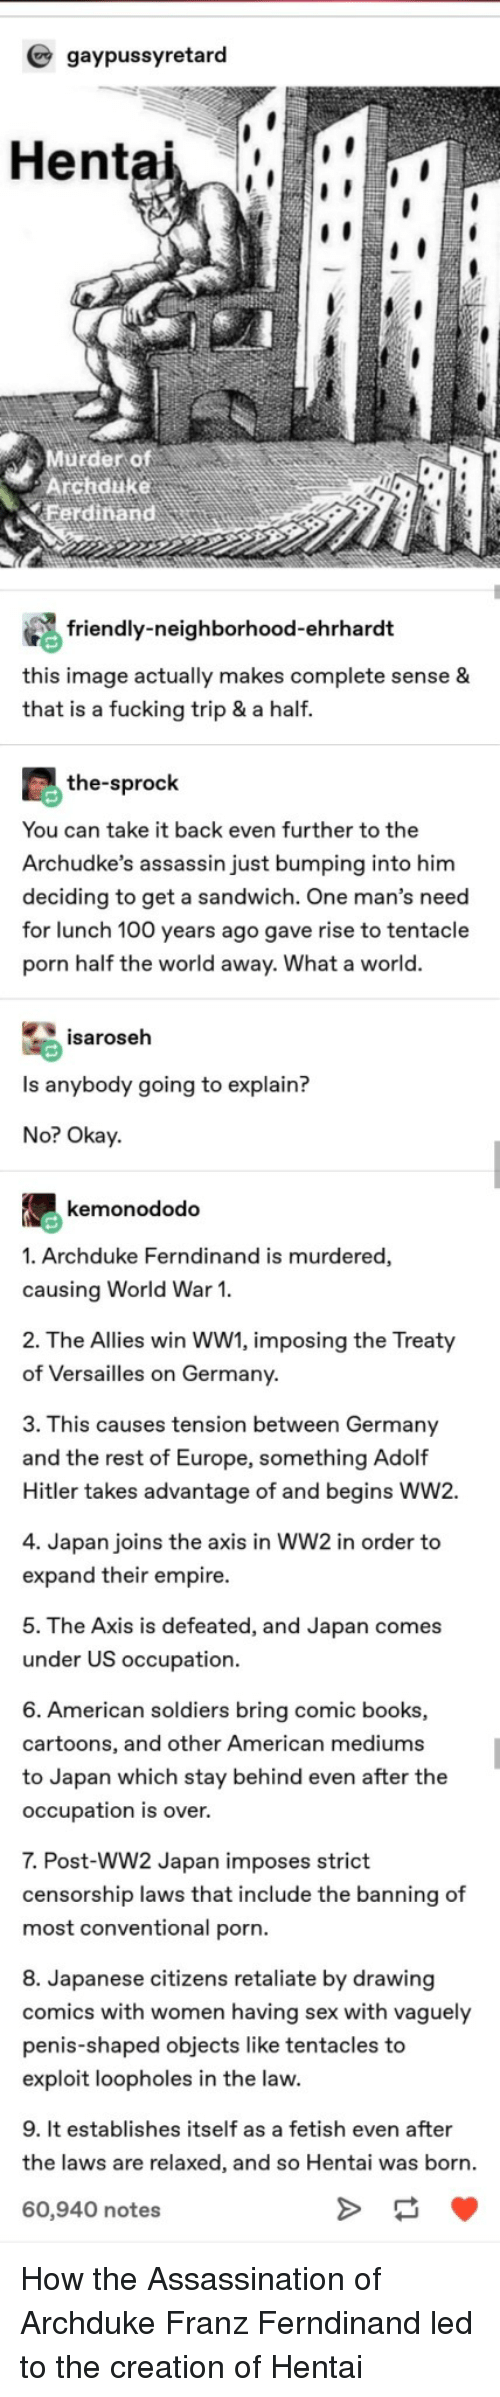 Anaconda, Assassination, and Books: gaypussyretard  Hentai  Murder of  Archduke  erdinand  friendly-neighborhood-ehrhardt  this image actually makes complete sense &  that is a fucking trip & a half.  the-sprock  You can take it back even further to the  Archudke's assassin just bumping into him  deciding to get a sandwich. One man's need  for lunch 100 years ago gave rise to tentacle  porn half the world away. What a world.  isaroseh  Is anybody going to explain?  No? Okay  kemonododo  1. Archduke Ferndinand is murdered,  causing World War 1.  2. The Allies win WW1, imposing the Treaty  of Versailles on Germany  3. This causes tension between Germany  and the rest of Europe, something Adolf  Hitler takes advantage of and begins WW2.  4. Japan joins the axis in WW2 in order to  expand their empire.  5. The Axis is defeated, and Japan comes  under US occupation  6. American soldiers bring comic books,  cartoons, and other American mediums  to Japan which stay behind even after the  occupation is over.  7. Post-WW2 Japan imposes strict  censorship laws that include the banning of  most conventional porn.  8. Japanese citizens retaliate by drawing  comics with women having sex with vaguely  penis-shaped objects like tentacles to  exploit loopholes in the law.  9. It establishes itself as a fetish even after  the laws are relaxed, and so Hentai was born.  60,940 notes How the Assassination of Archduke Franz Ferndinand led to the creation of Hentai